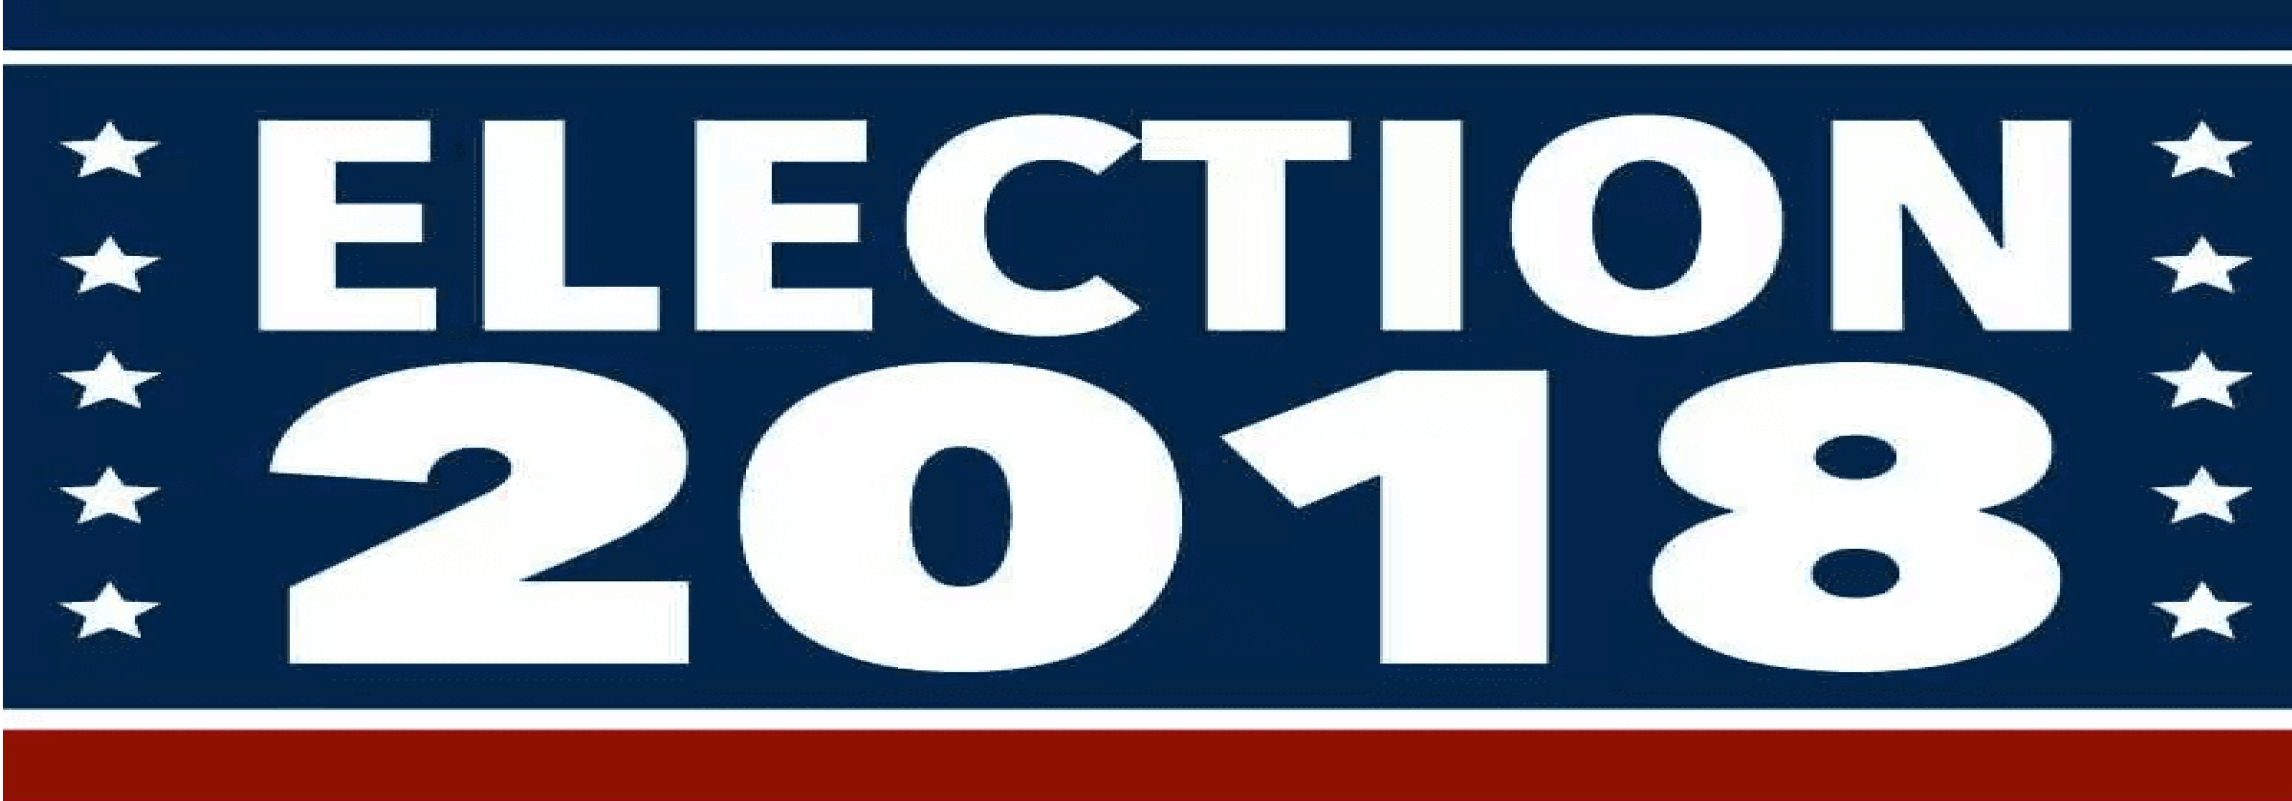 fayette county elections voter registration